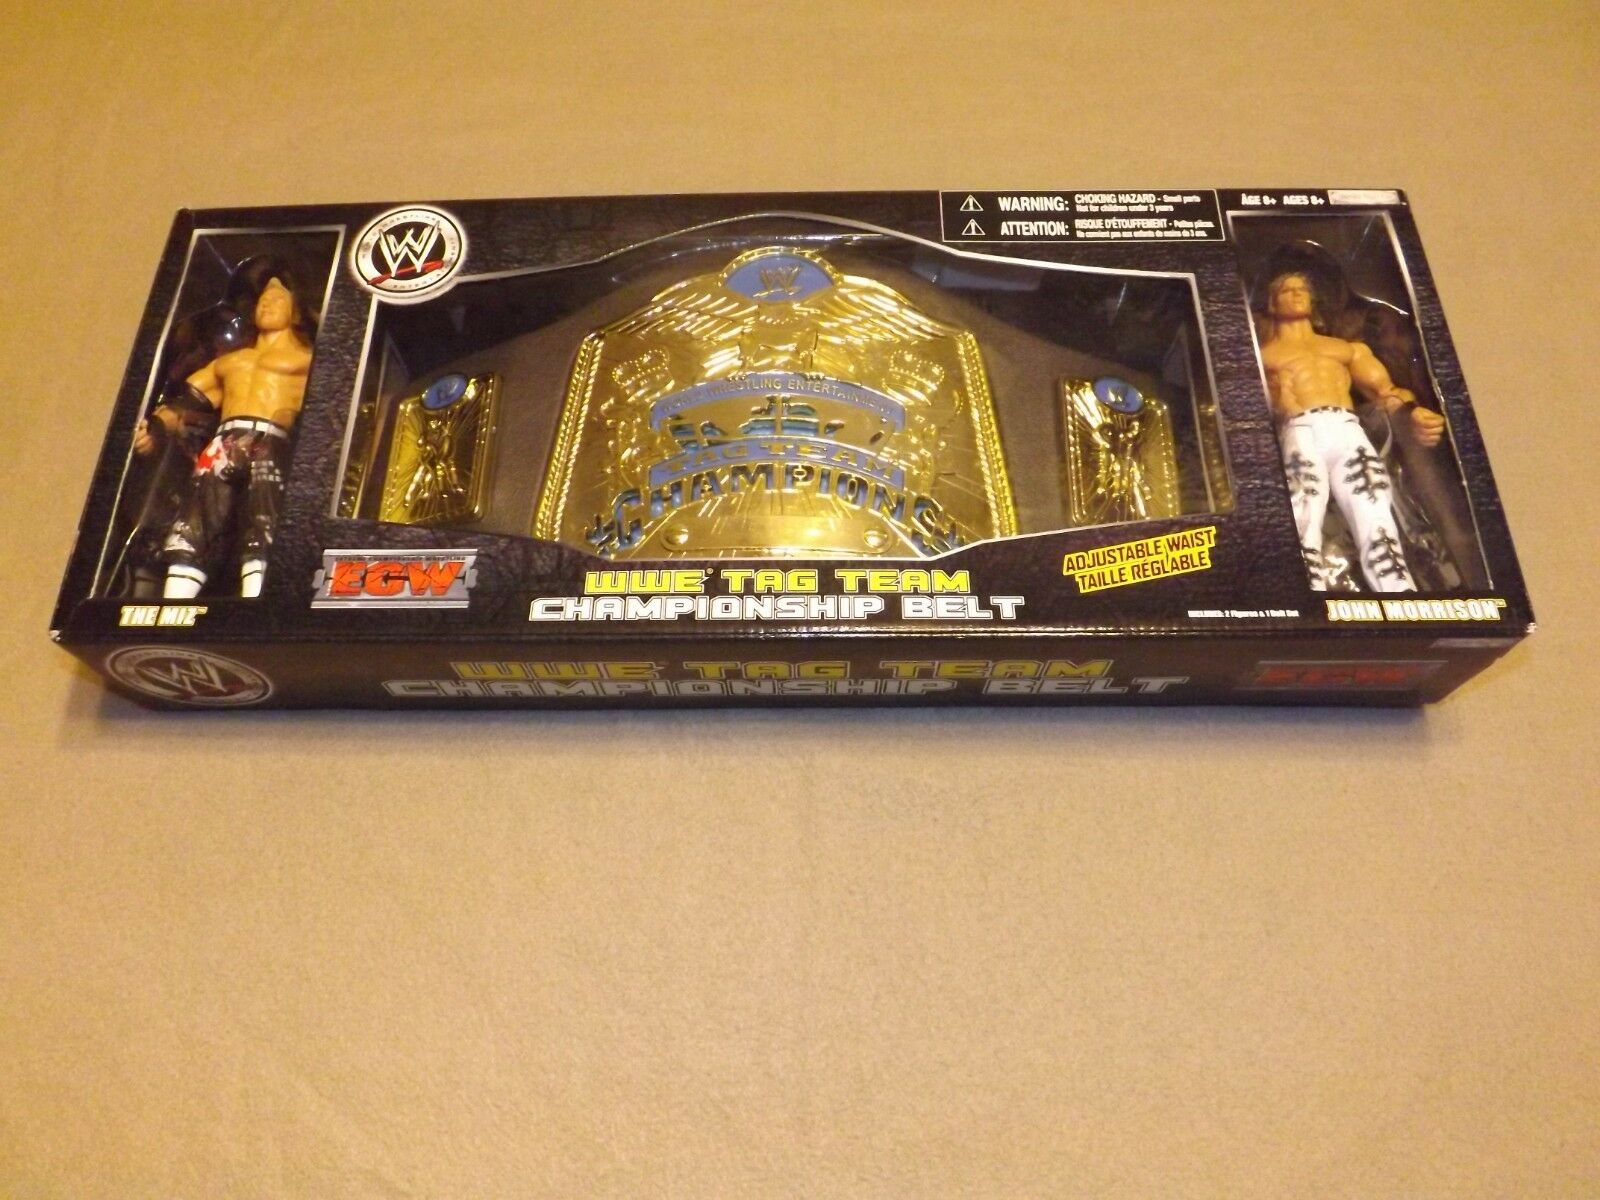 NEW IN UNOPENED BOX - Miz and John Morrison - WWE Tag Team Belt and 2 Figures.